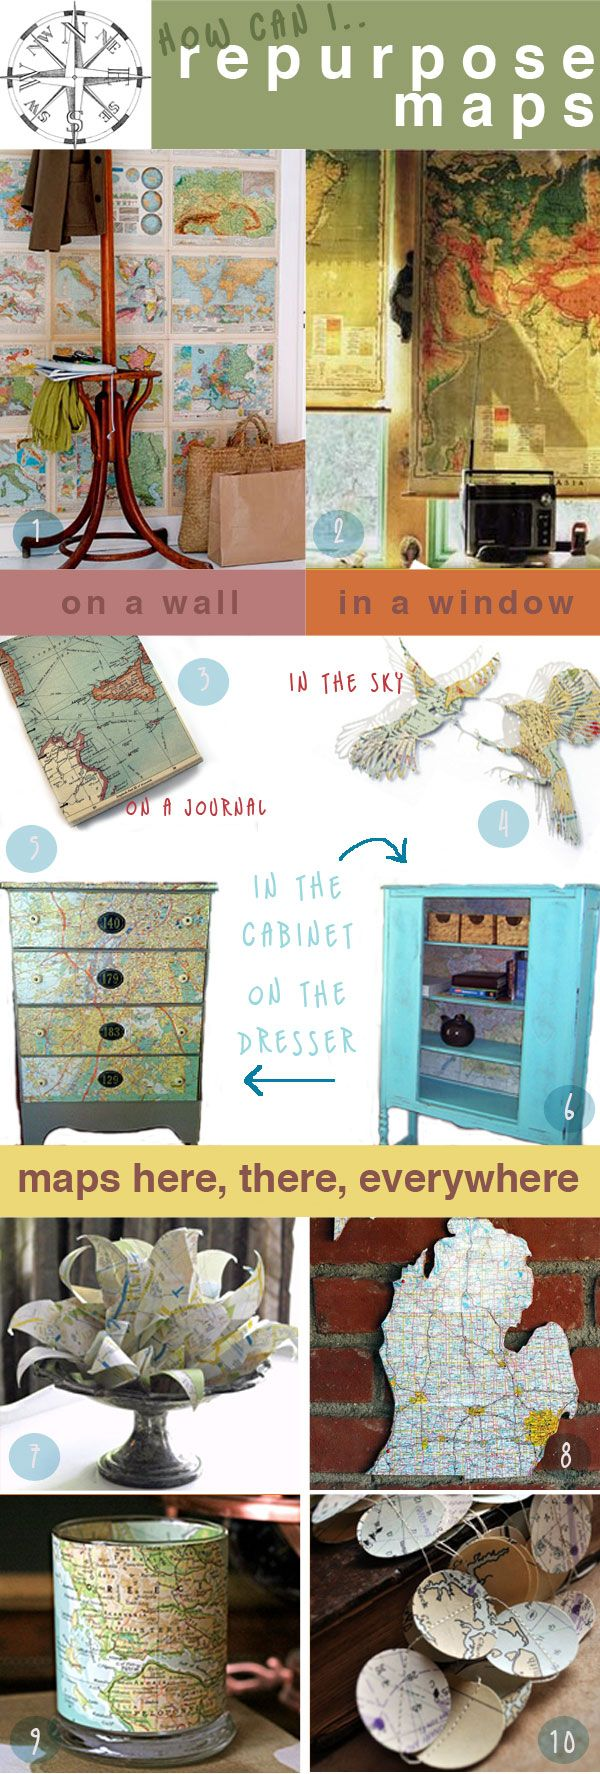 best diy reuse recycle u upcycle images on pinterest